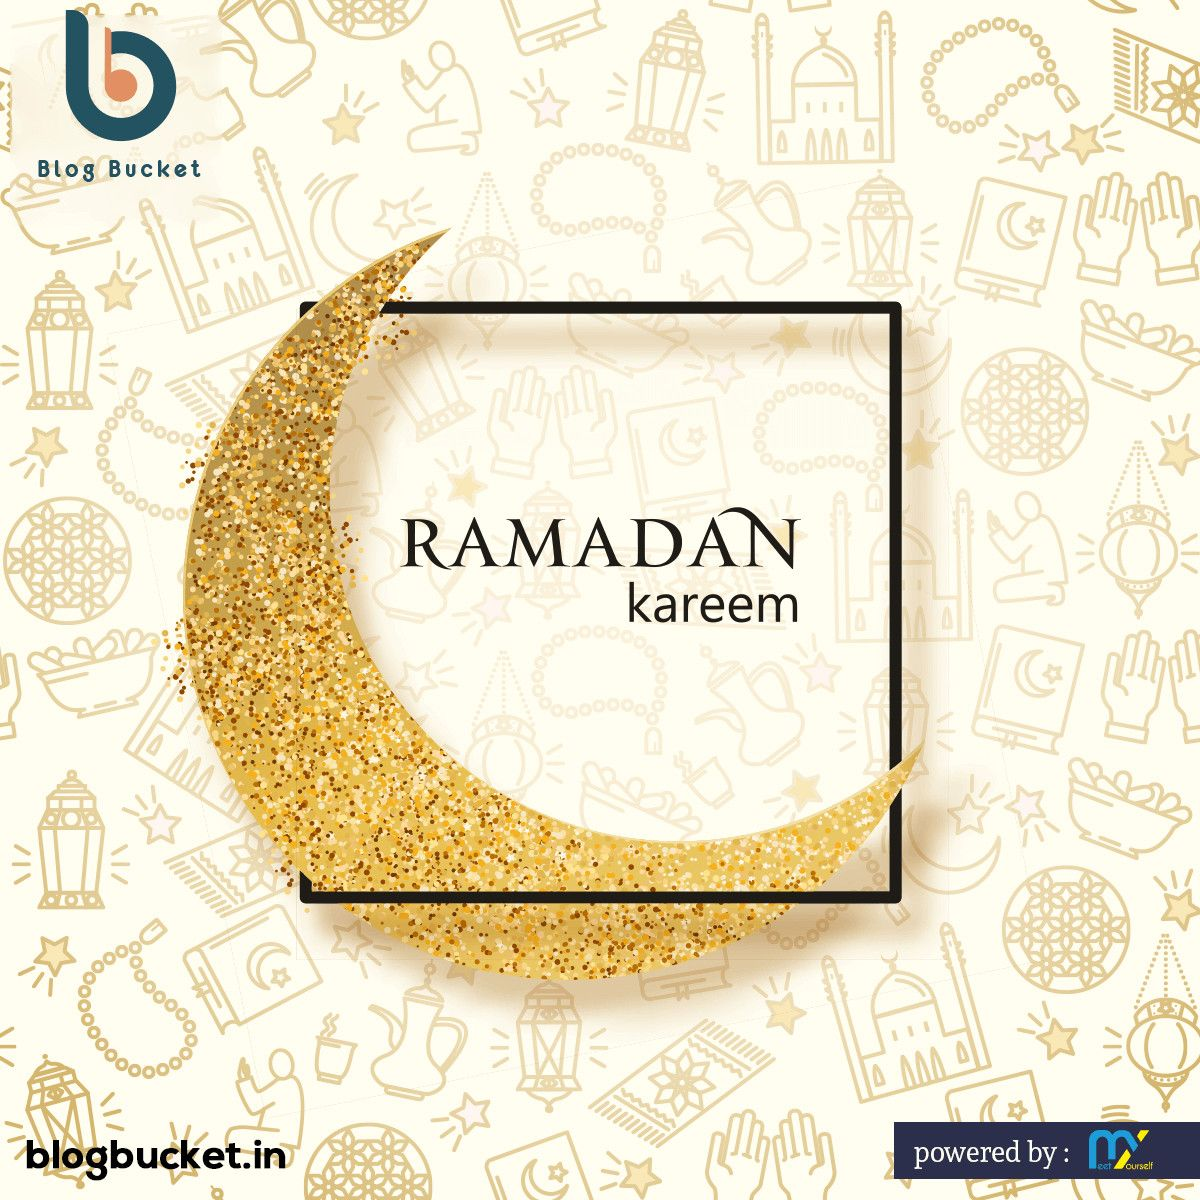 Reap The Seeds Of Love This Ramadan With Images